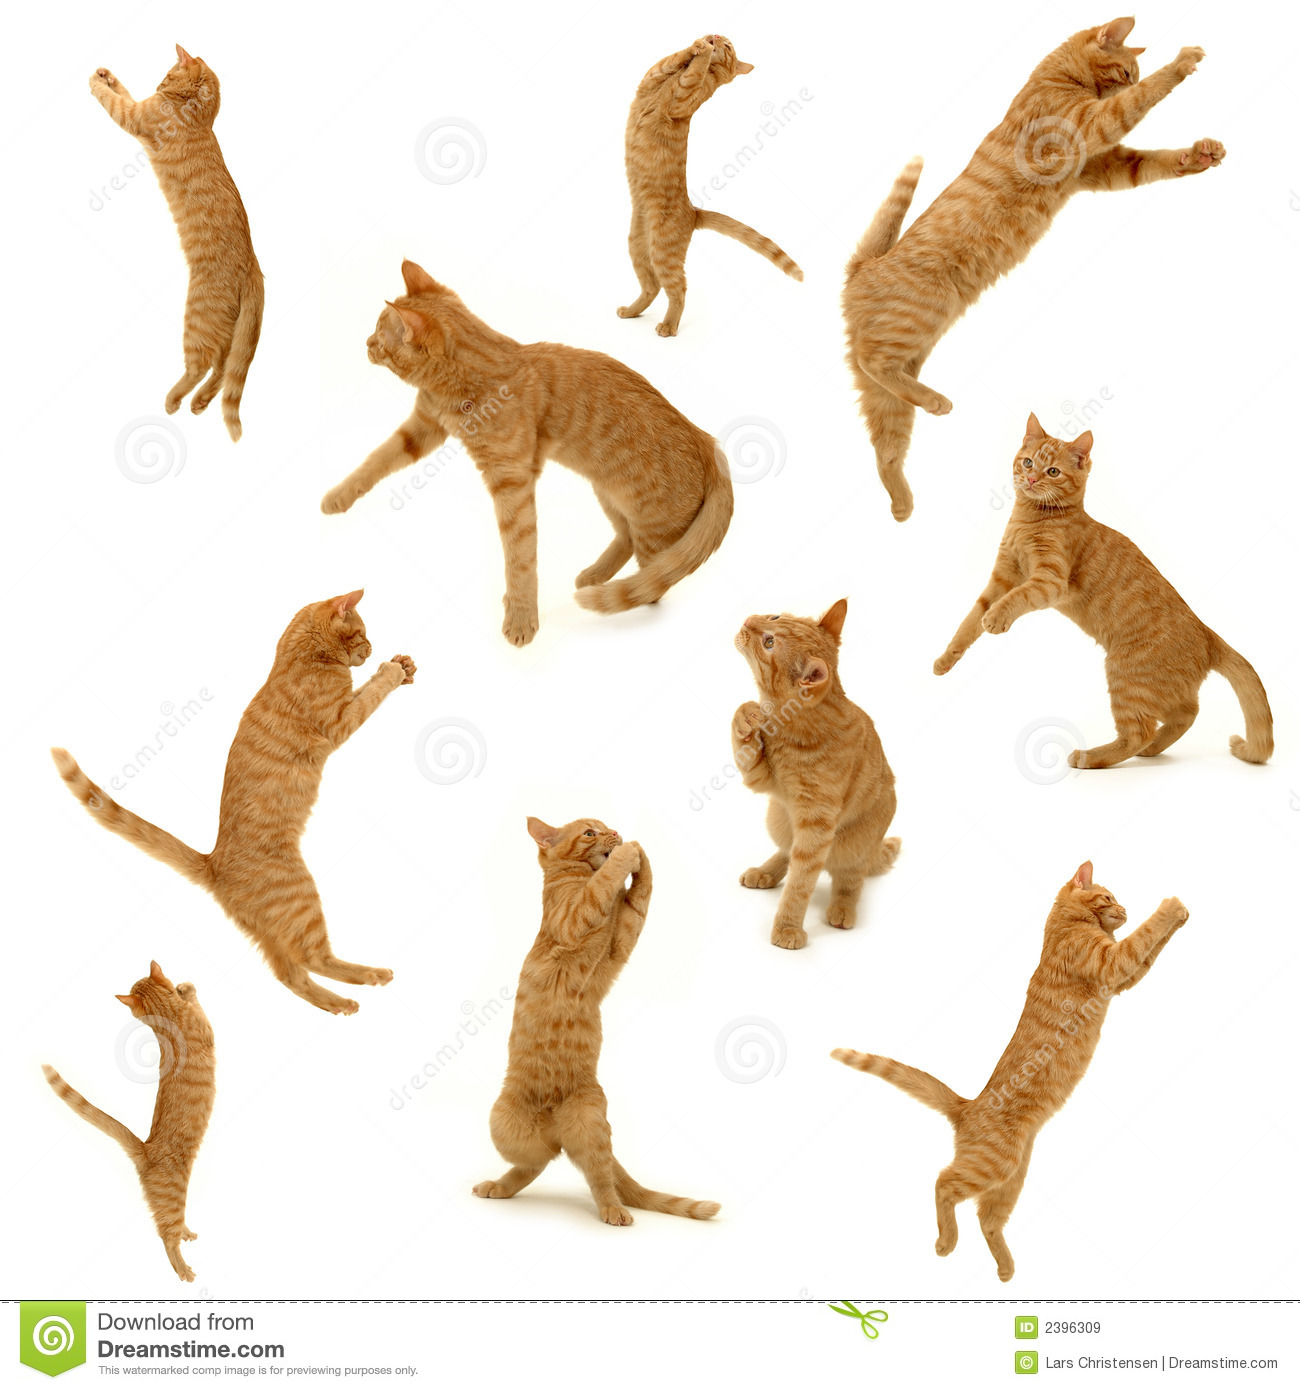 Kittens in action